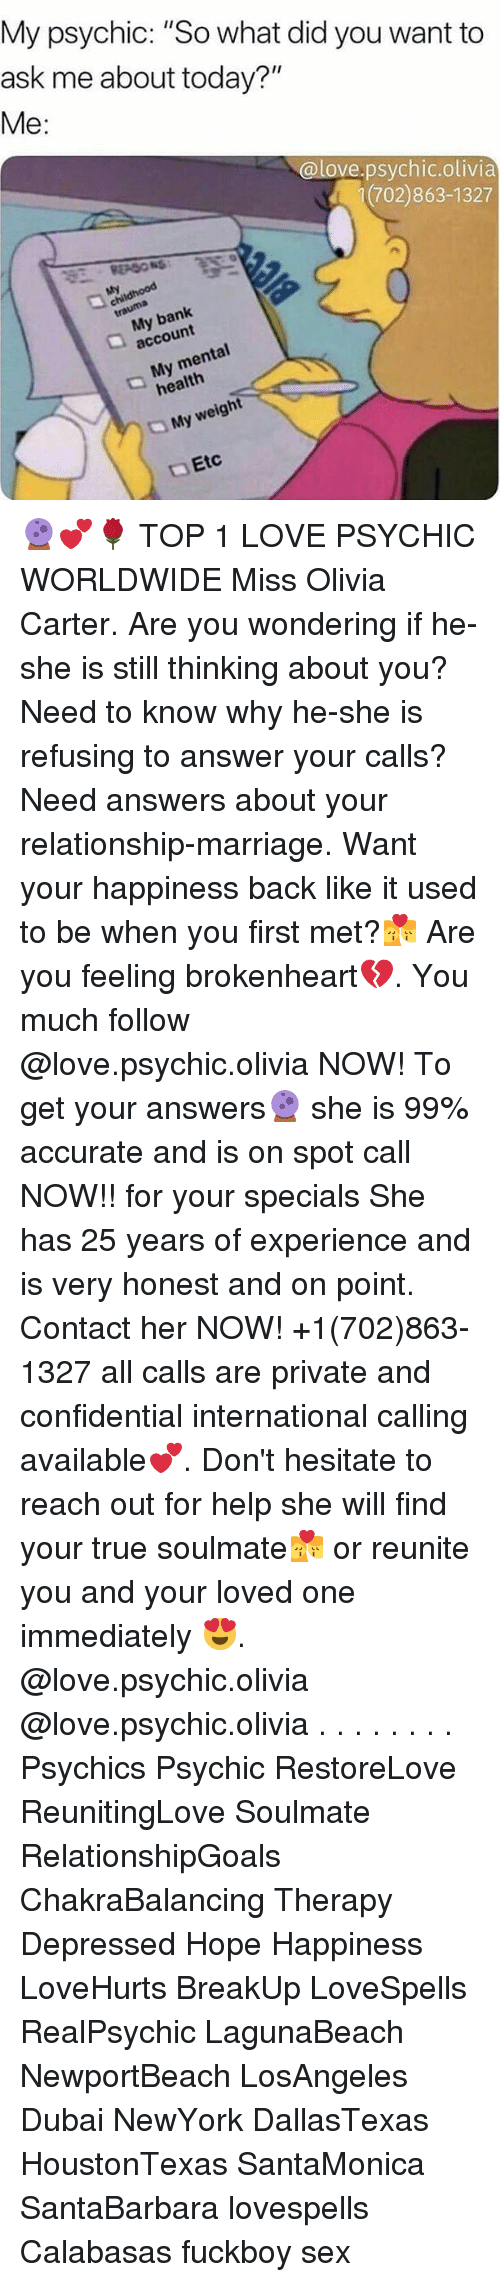 """brokenheart: My psychic: """"So what did you want to  ask me about today?""""  Me:  @love.psychic.olivia  (702)863-1327  childhood  My bank  account  My mental  health  My weight  Etc 🔮💕🌹 TOP 1 LOVE PSYCHIC WORLDWIDE Miss Olivia Carter. Are you wondering if he-she is still thinking about you? Need to know why he-she is refusing to answer your calls? Need answers about your relationship-marriage. Want your happiness back like it used to be when you first met?💏 Are you feeling brokenheart💔. You much follow @love.psychic.olivia NOW! To get your answers🔮 she is 99% accurate and is on spot call NOW!! for your specials She has 25 years of experience and is very honest and on point. Contact her NOW! +1(702)863-1327 all calls are private and confidential international calling available💕. Don't hesitate to reach out for help she will find your true soulmate💏 or reunite you and your loved one immediately 😍. @love.psychic.olivia @love.psychic.olivia . . . . . . . . Psychics Psychic RestoreLove ReunitingLove Soulmate RelationshipGoals ChakraBalancing Therapy Depressed Hope Happiness LoveHurts BreakUp LoveSpells RealPsychic LagunaBeach NewportBeach LosAngeles Dubai NewYork DallasTexas HoustonTexas SantaMonica SantaBarbara lovespells Calabasas fuckboy sex"""